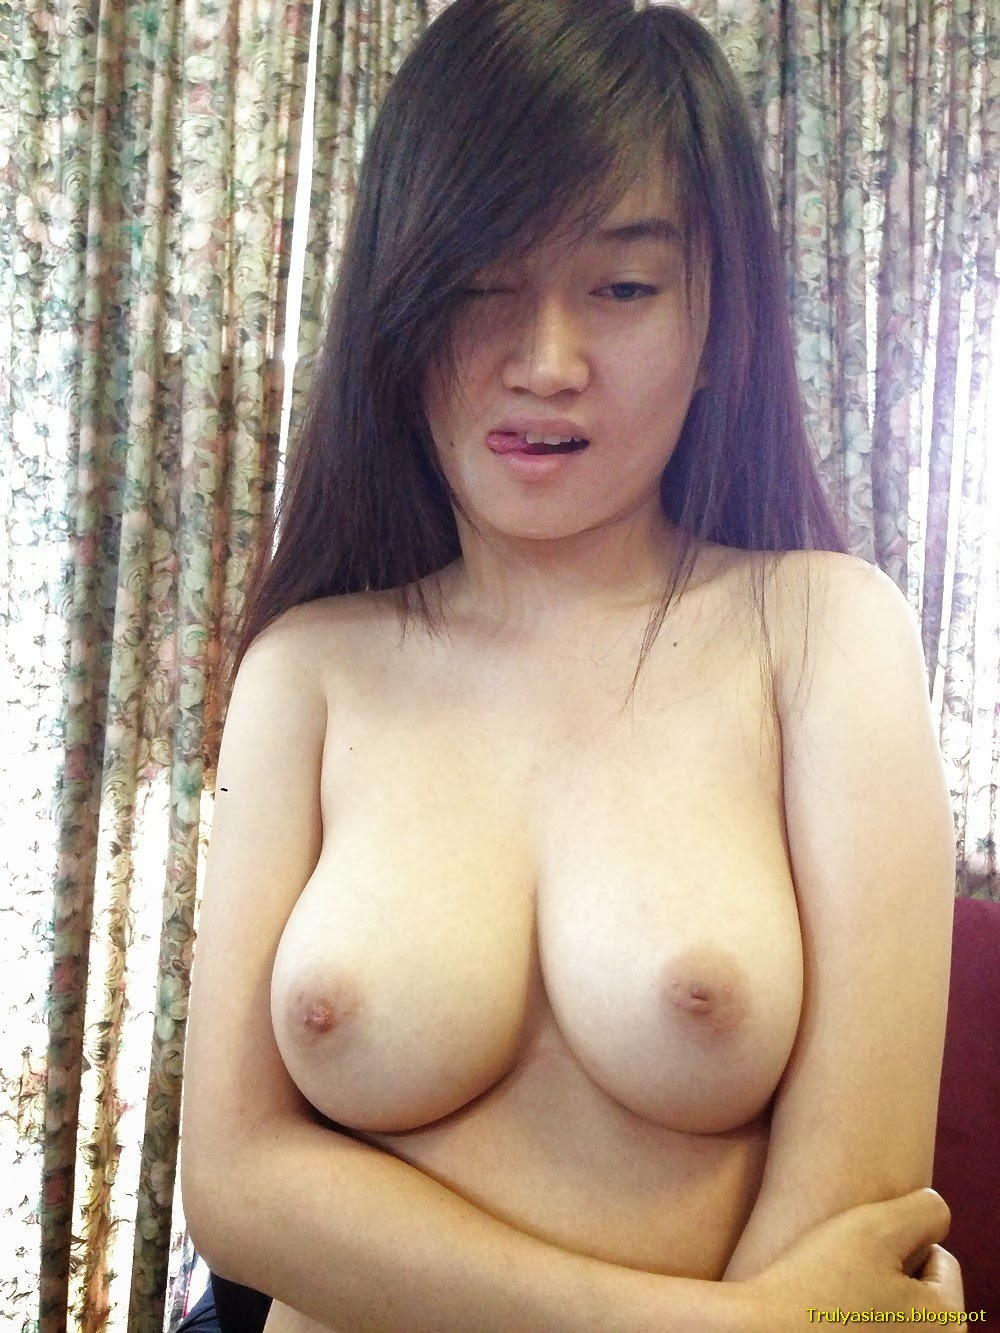 Taiwanese big boobs naked girl